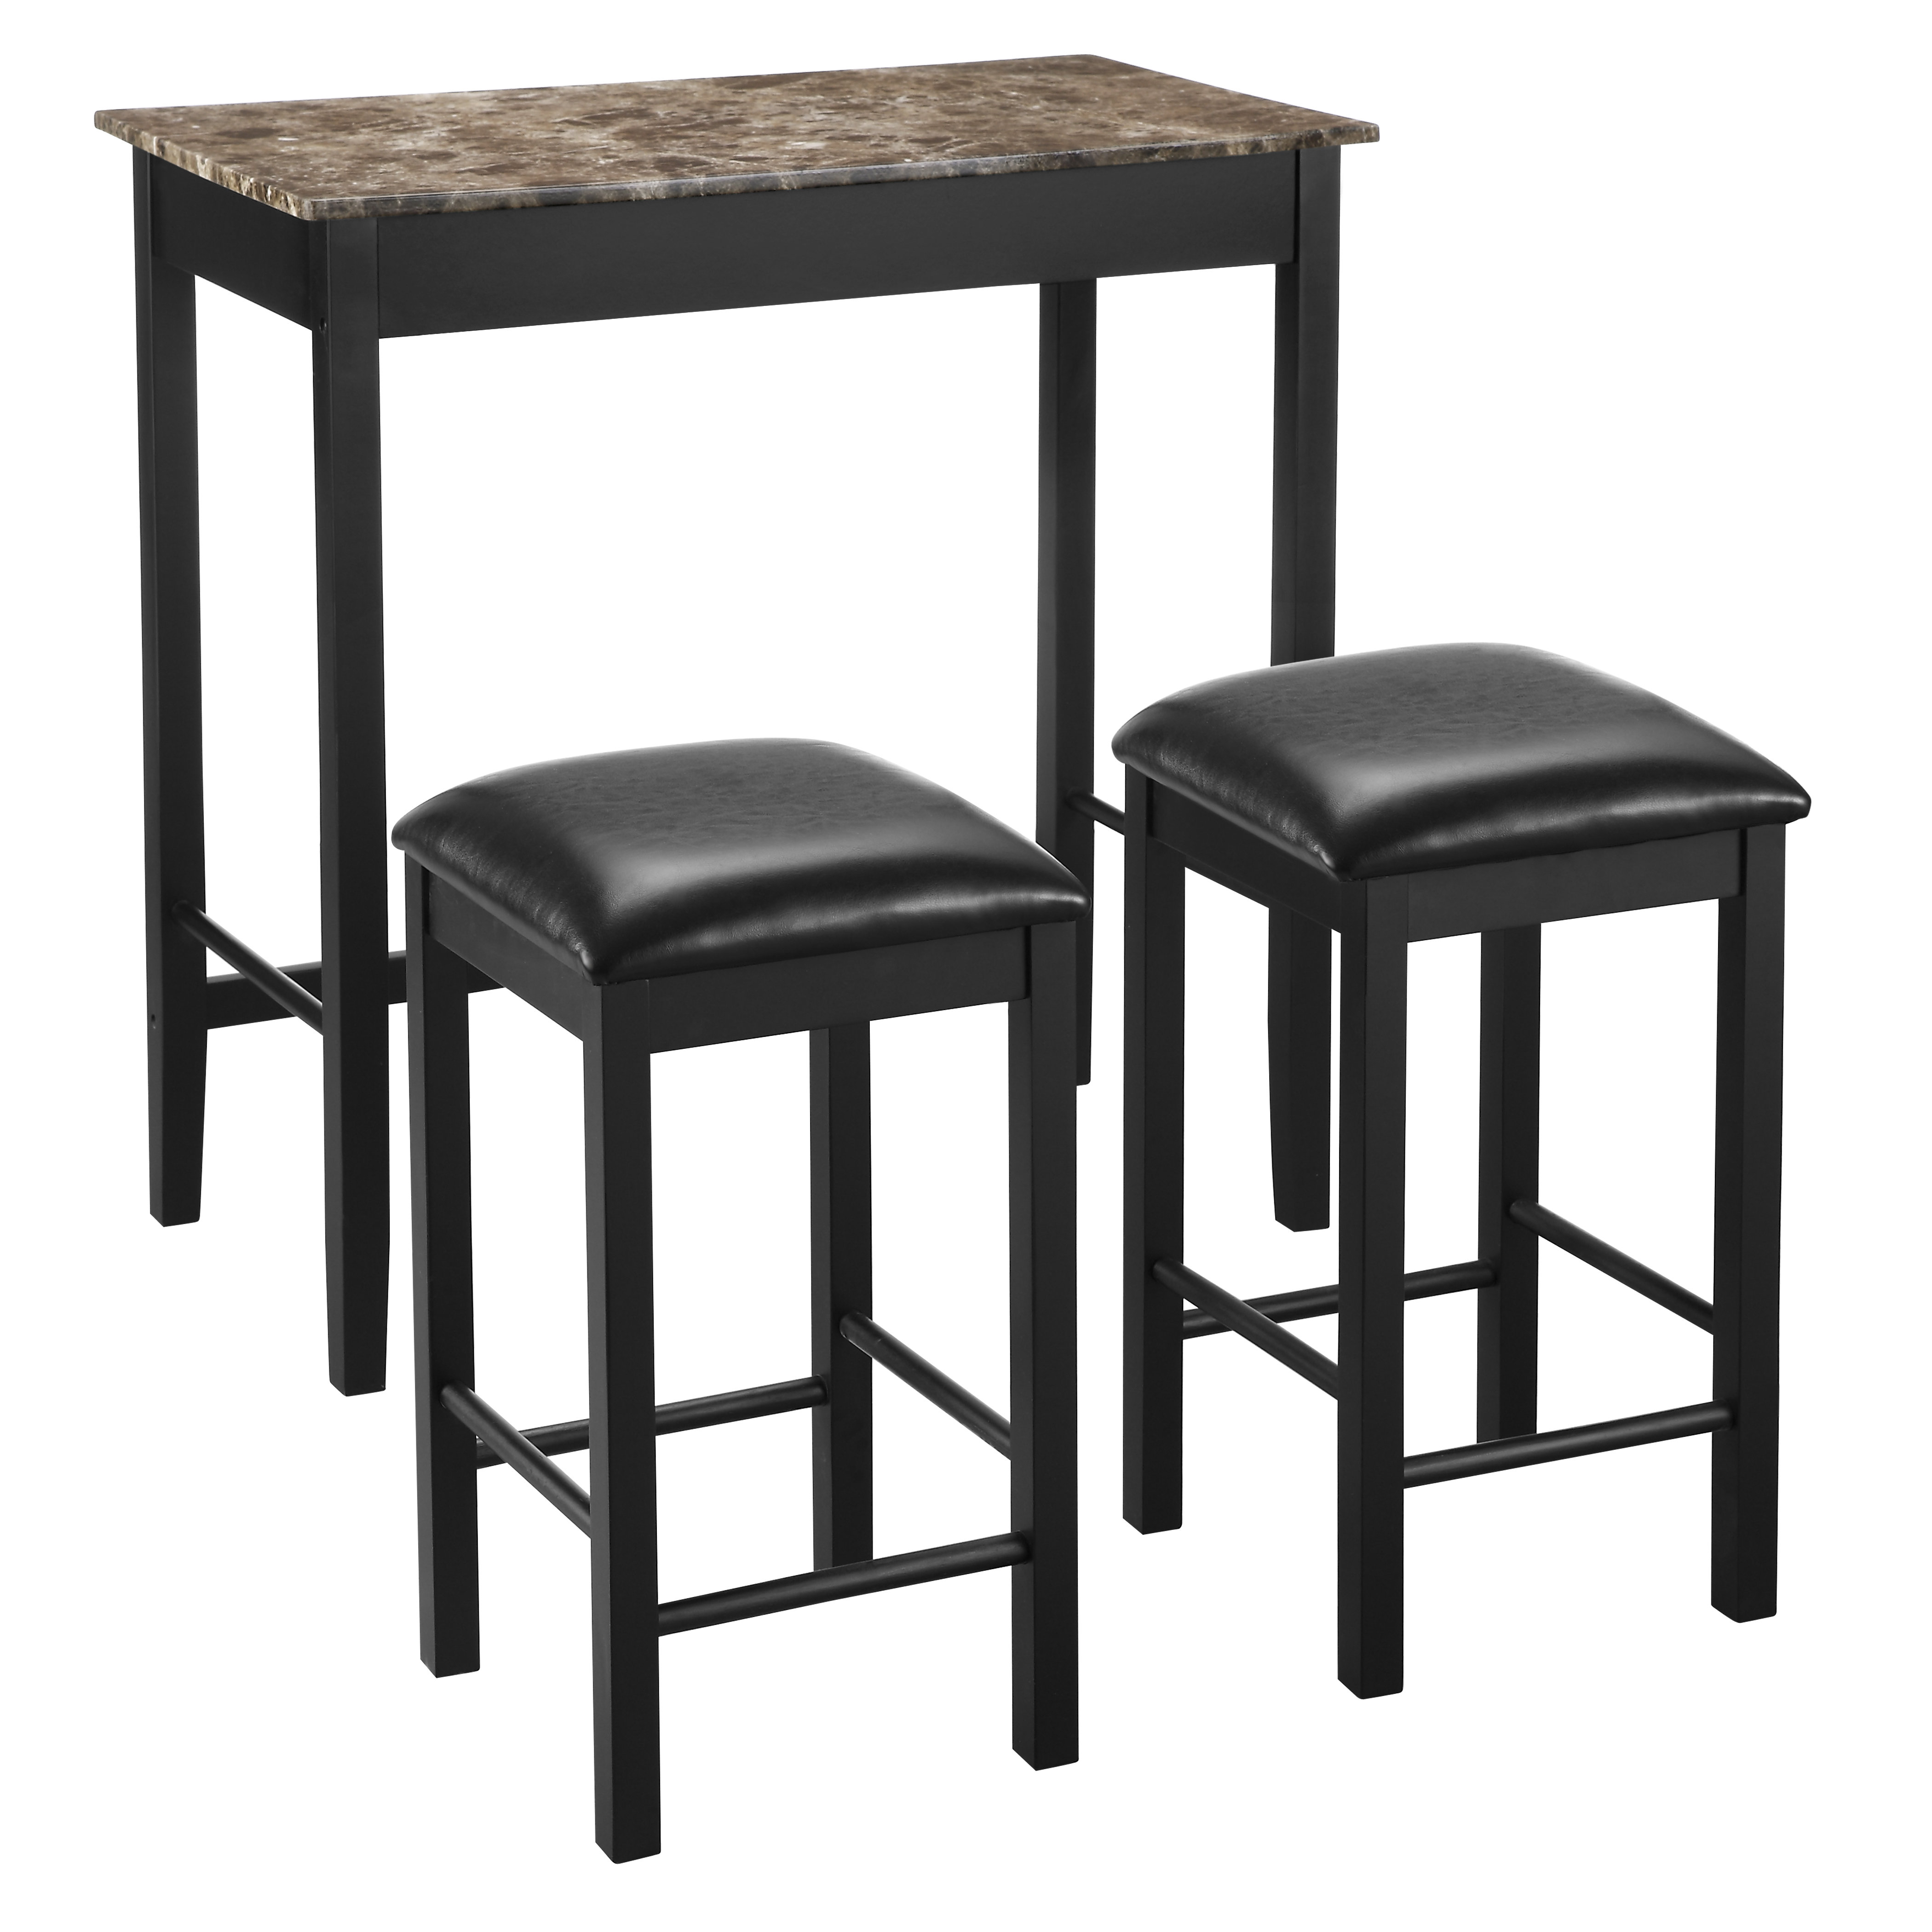 Nutter 3 Piece Dining Sets Regarding 2020 Nutter 3 Piece Dining Set & Reviews (View 2 of 25)